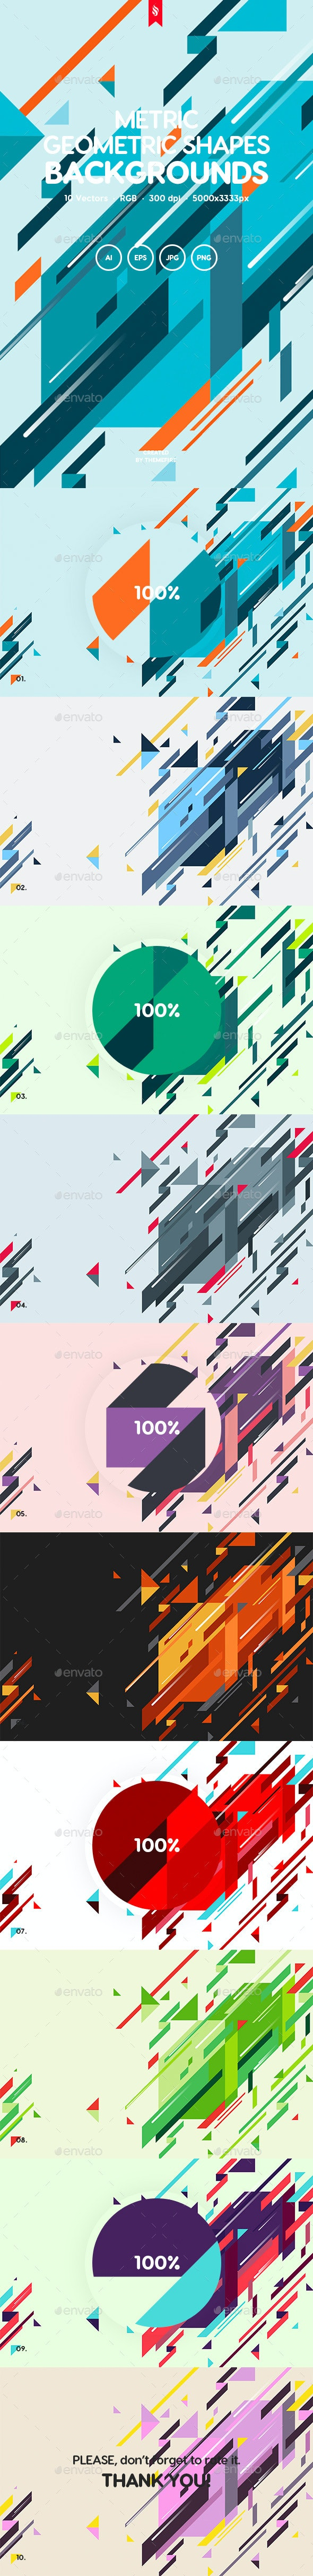 Metric - Geometric Shapes Backgrounds - Abstract Backgrounds